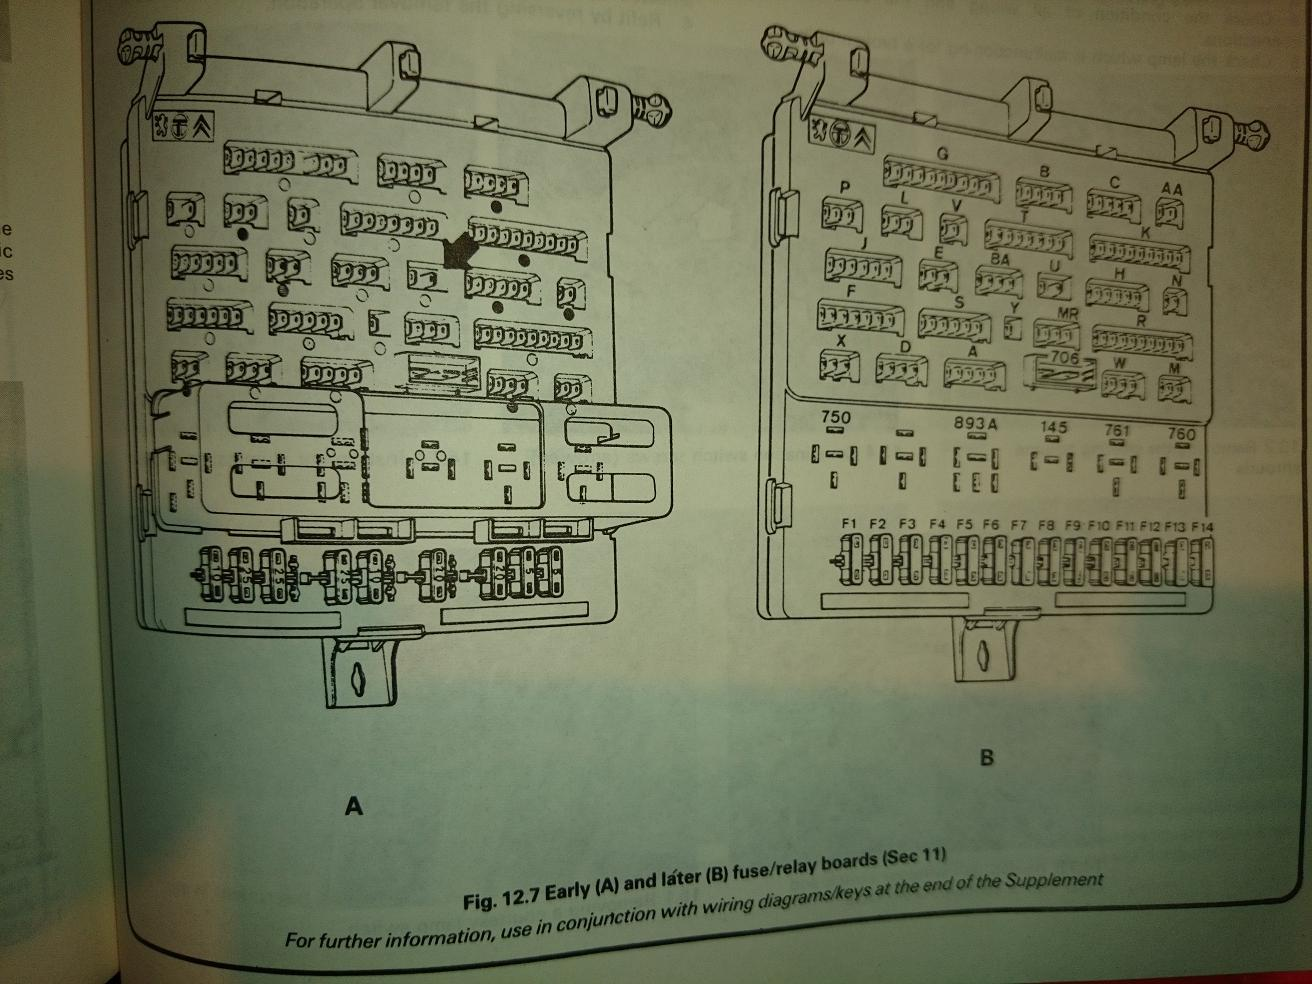 peugeot 205 gti fuse box diagram product wiring diagrams \u2022 toyota vitz fuse box found a good fusebox diagram misc general technical rh 205gtidrivers com peugeot 205 rally 1984 peugeot